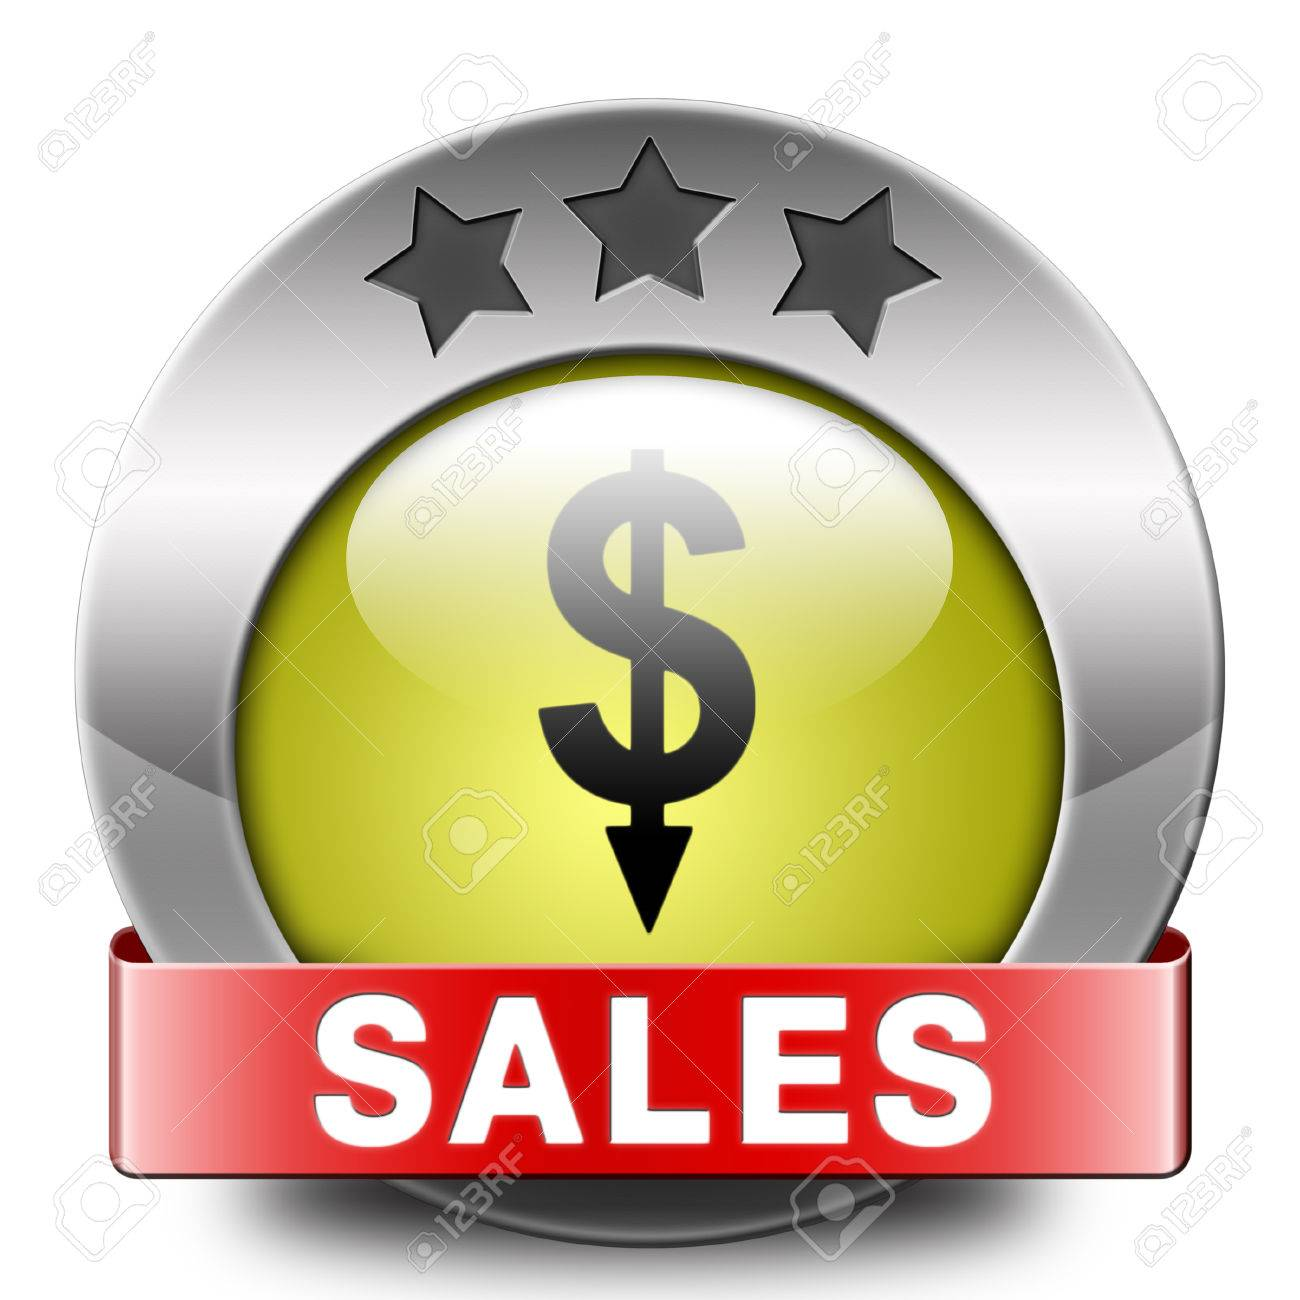 Stock Photo - sales icon online shopping concept with discount web shop bargain cheap order at webshop sale icon